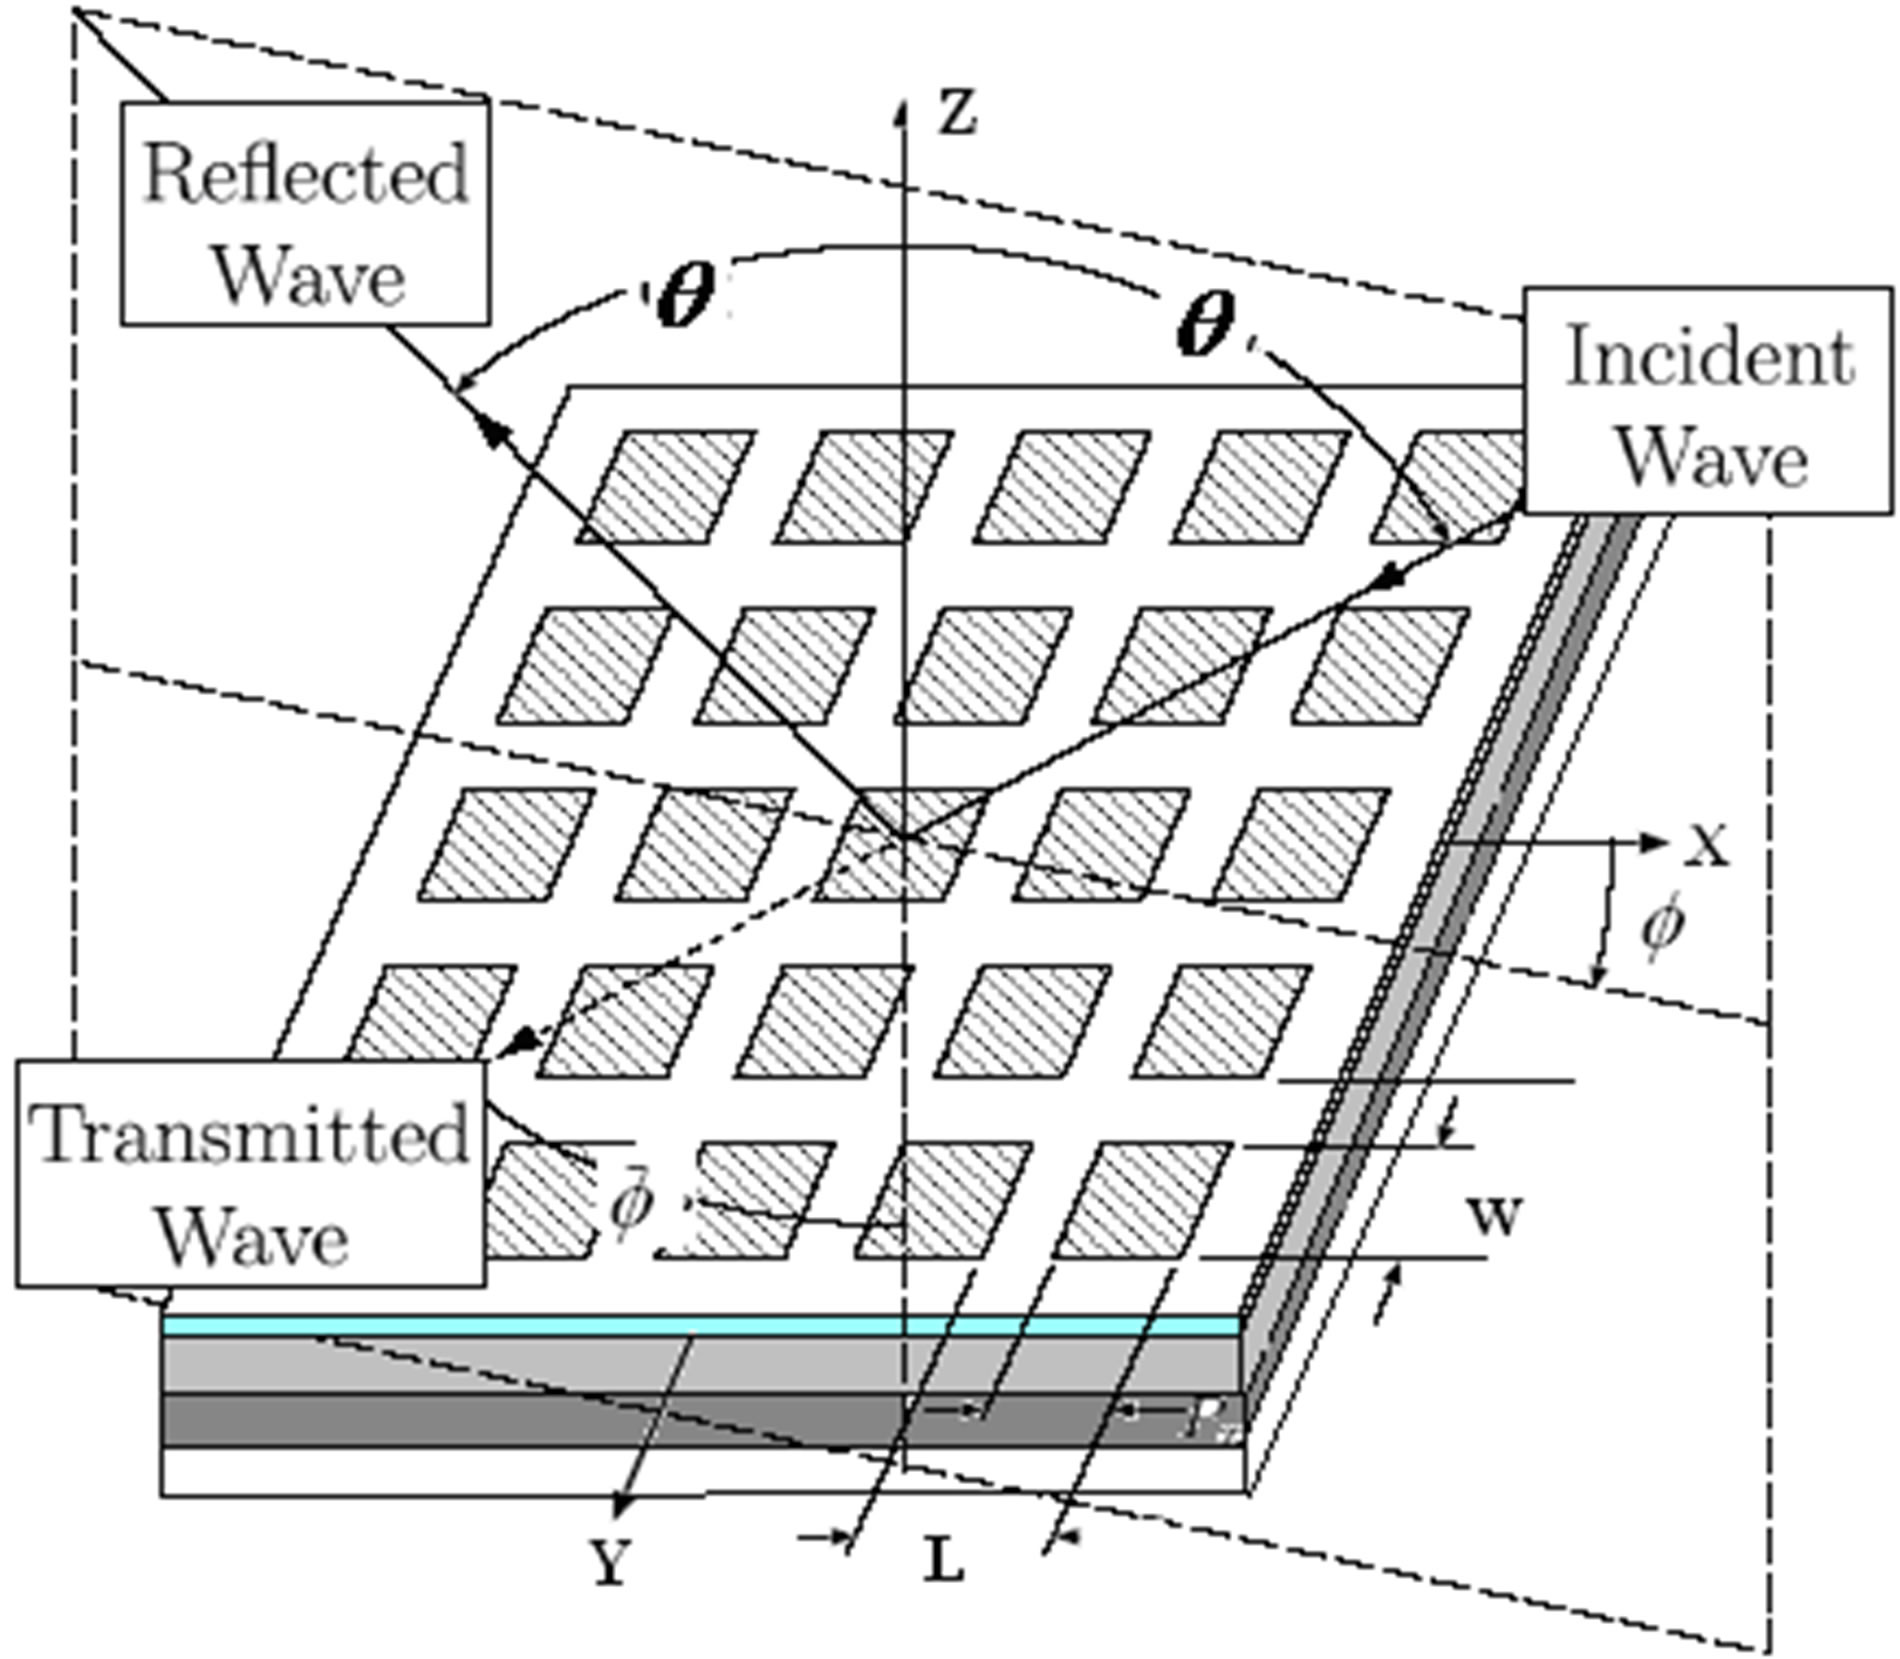 periodic planar multilayered substrates analysis using wave concept iterative process